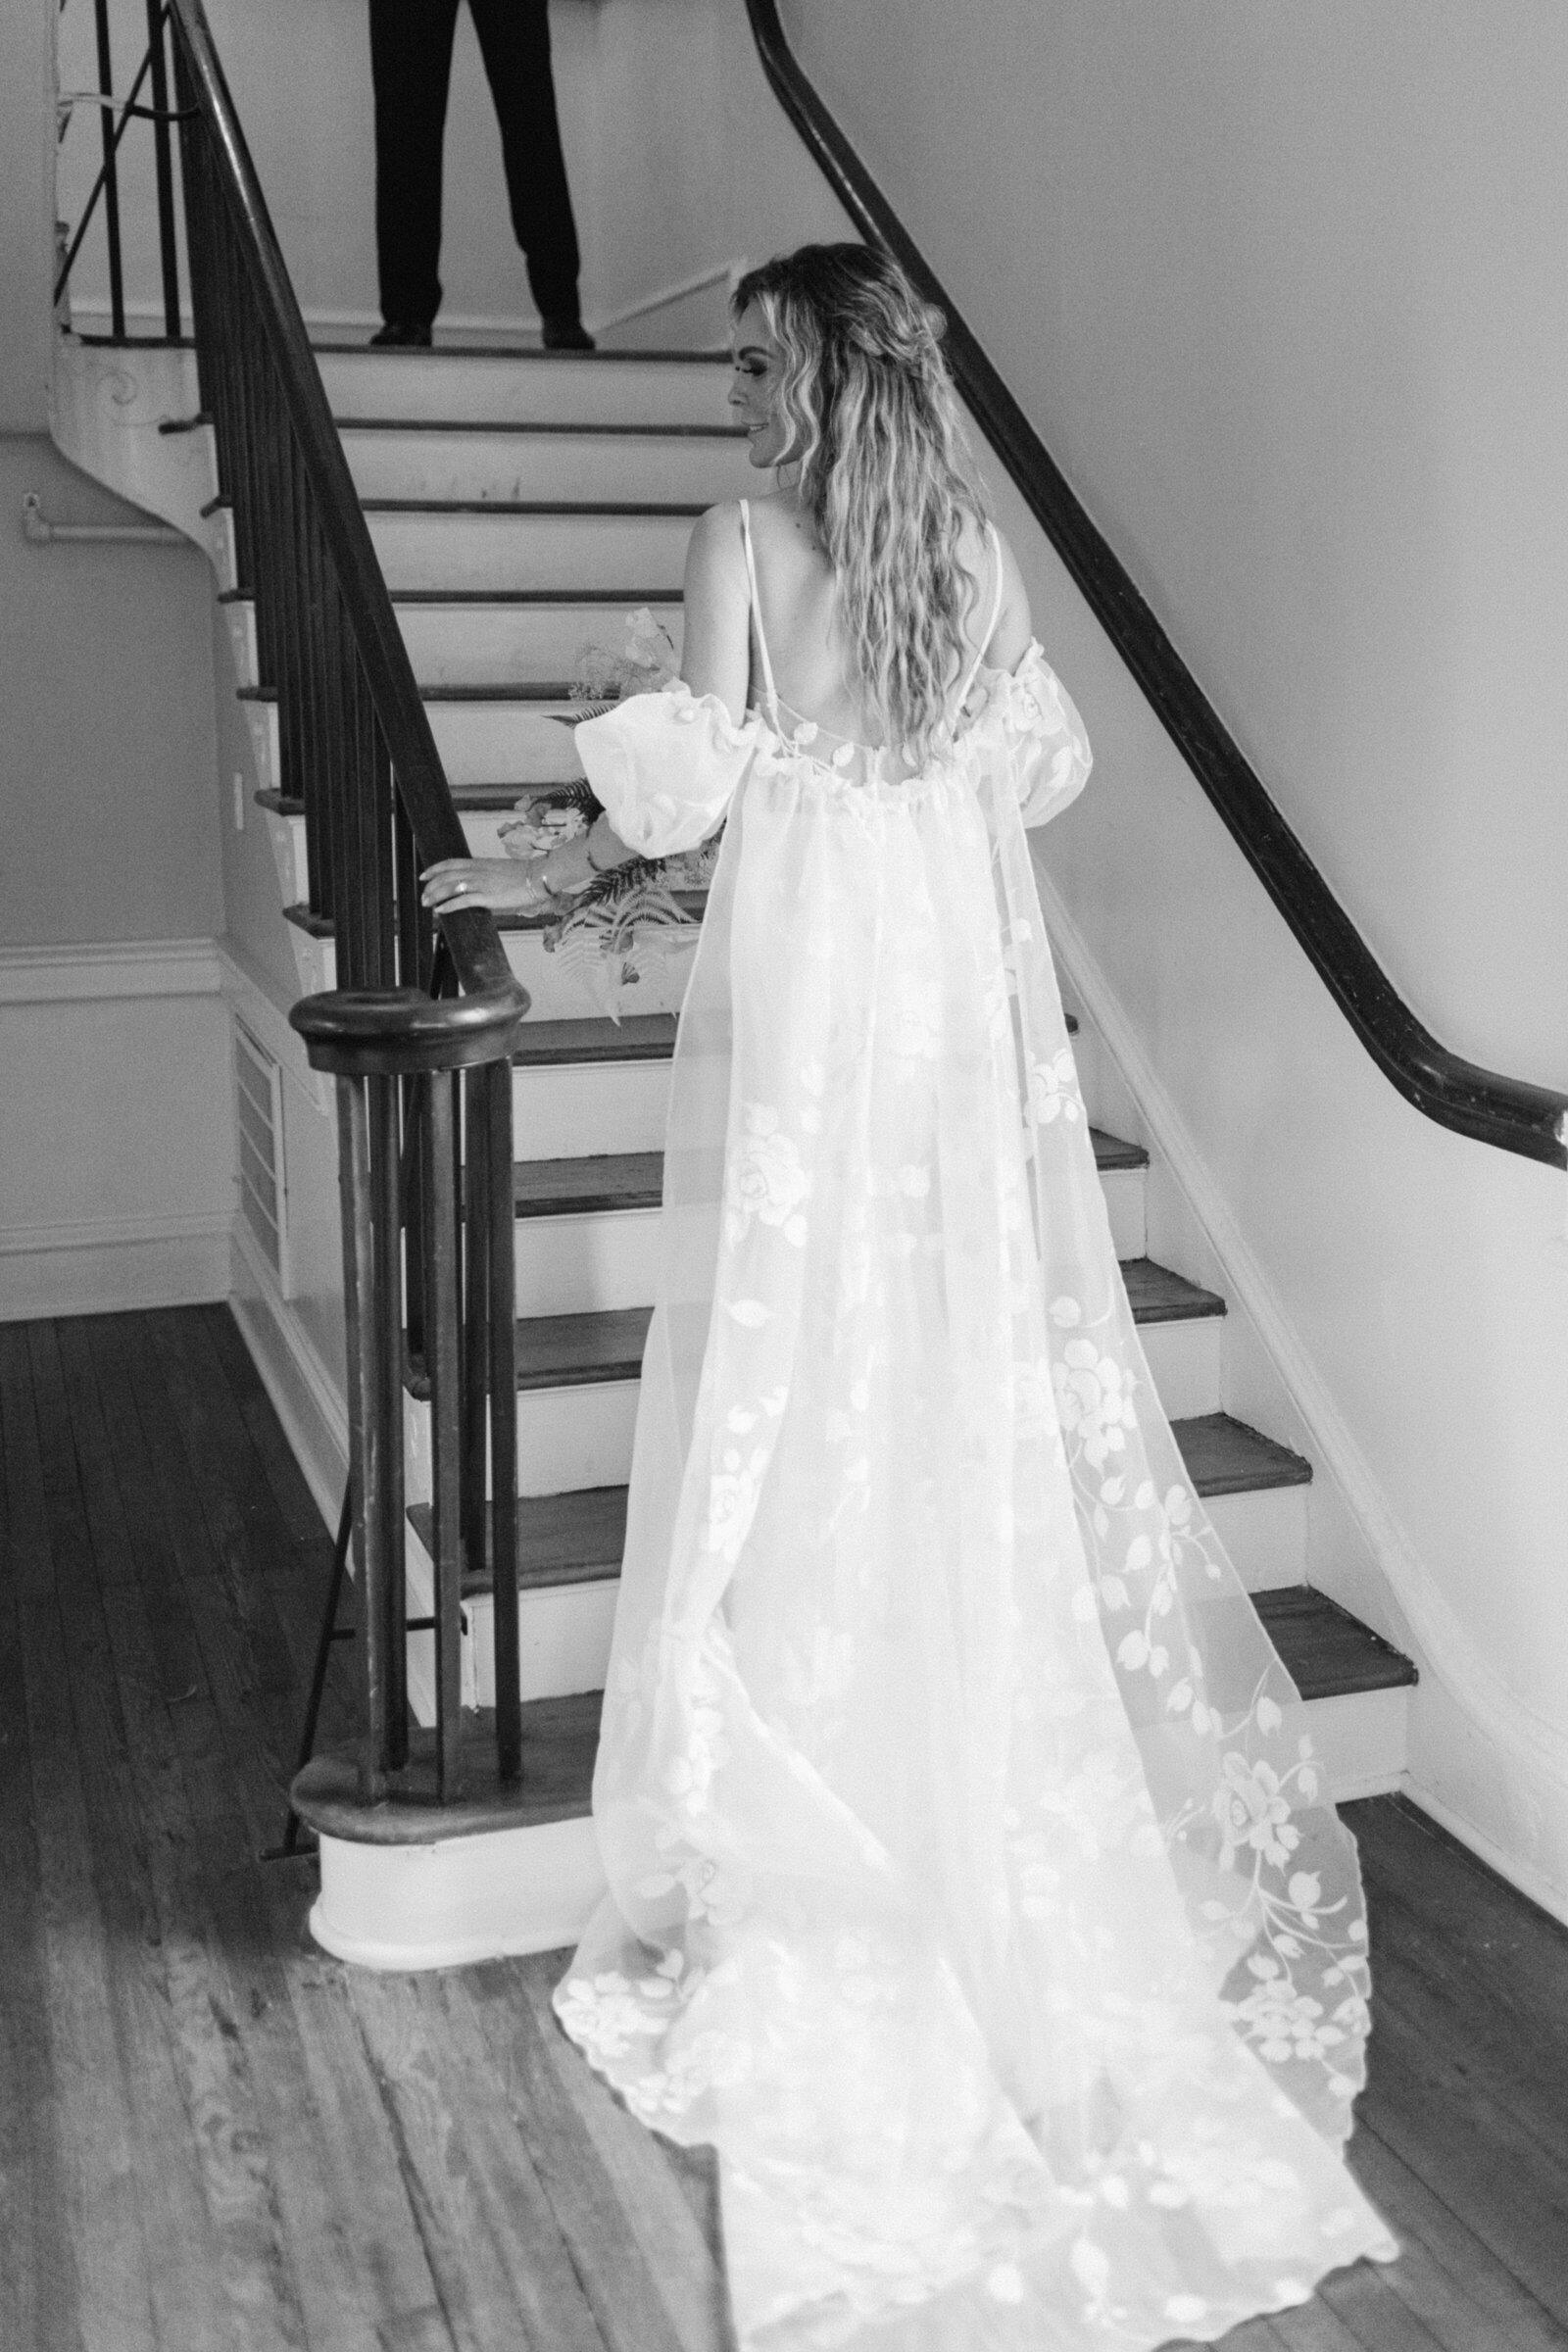 black and white photo of a bride walking up the stairs